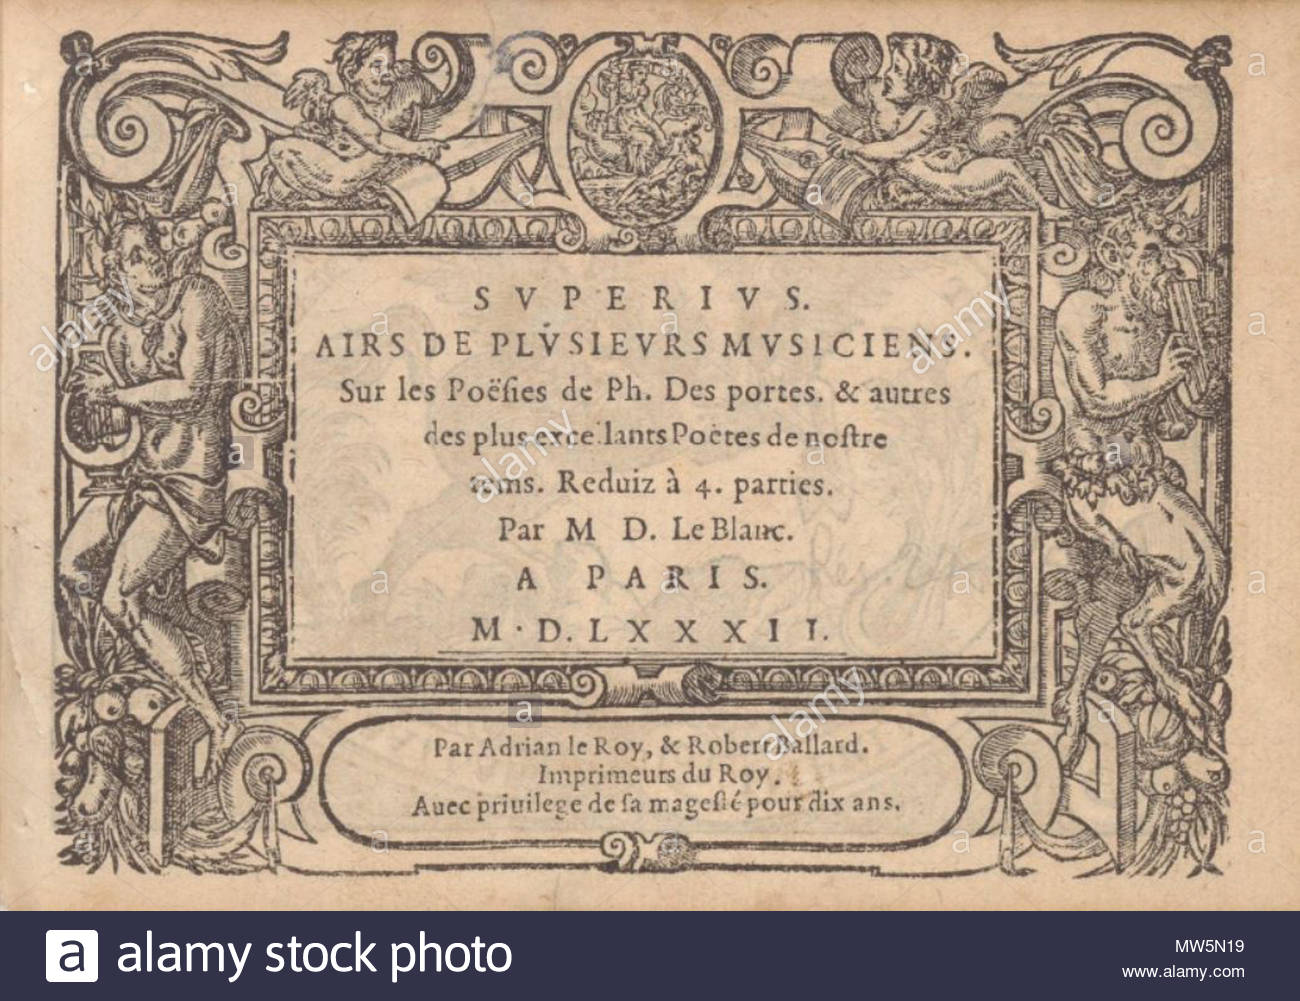 . English: Title page of Didier Le Blanc's Airs (Paris: Le Roy & Ballard, 1582). Paris BNF. 1582. Didier Le Blanc (fl. 1575-1585). 361 Le Blanc - Airs 1582 - Stock Image